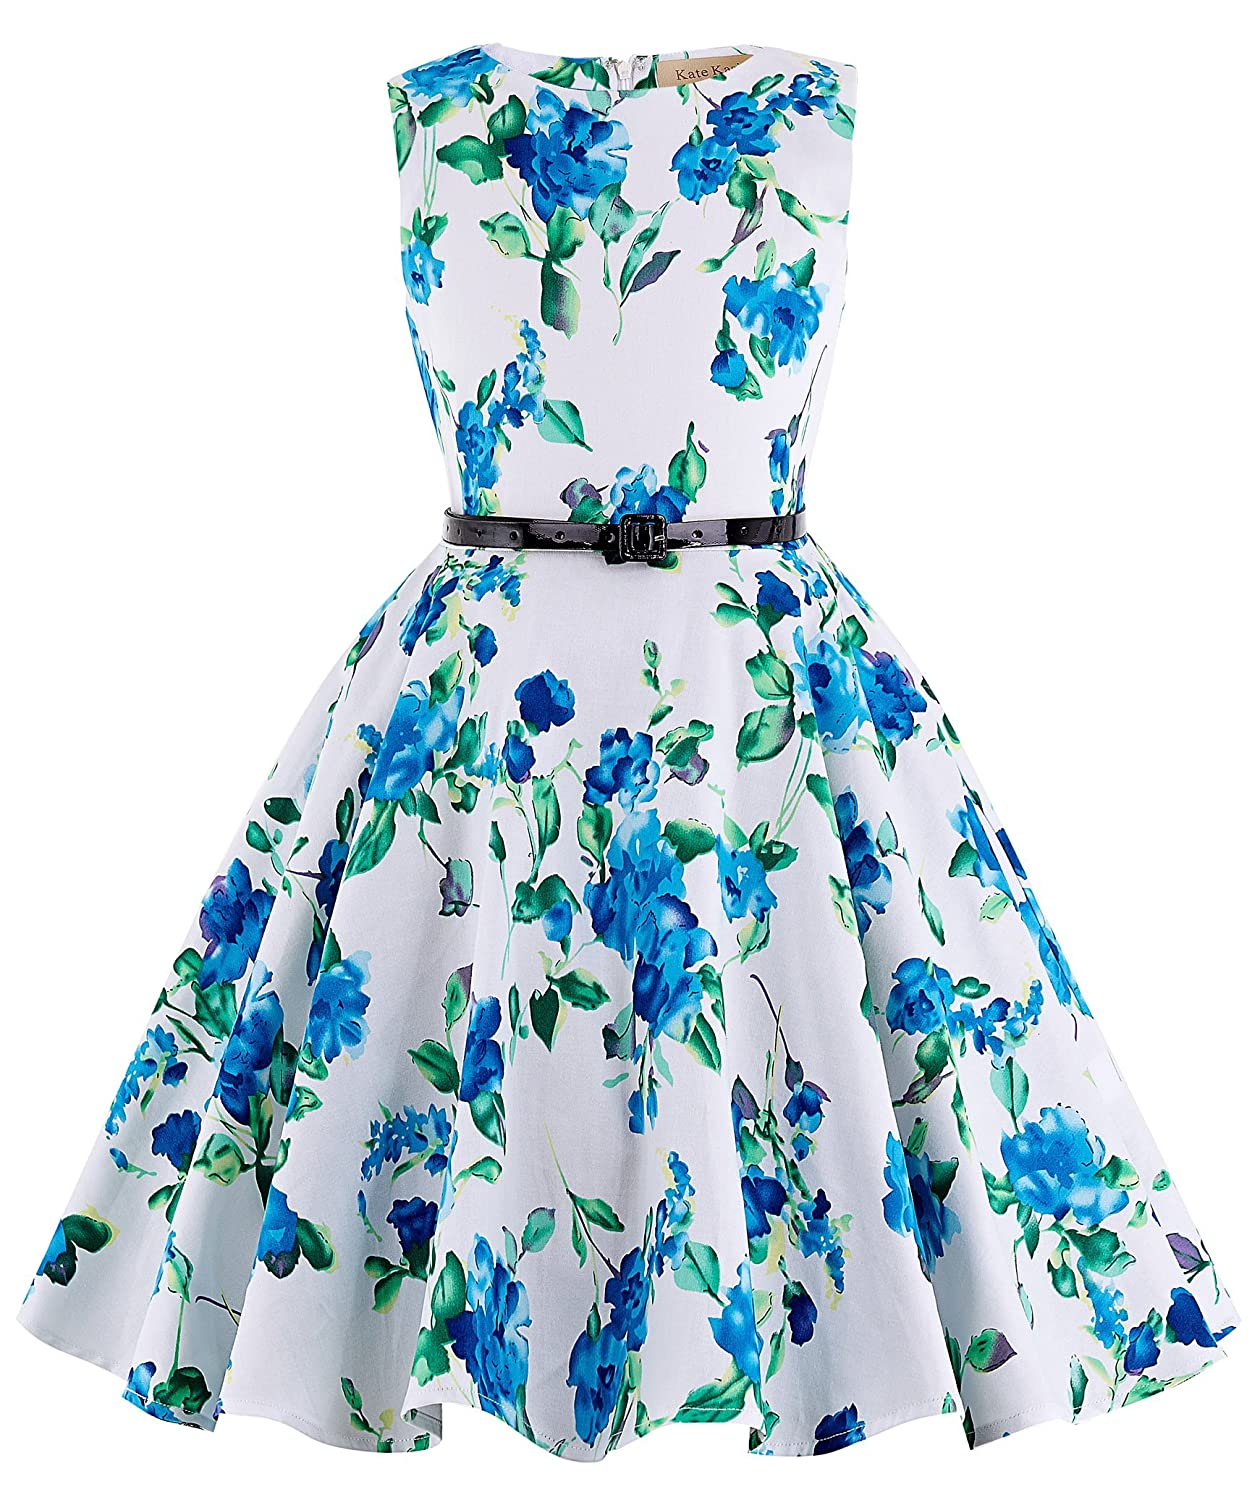 Vintage Style Children's Clothing: Girls, Boys, Baby, Toddler Kate Kasin Girls Sleeveless Vintage Floral Swing Party Dresses $22.99 AT vintagedancer.com